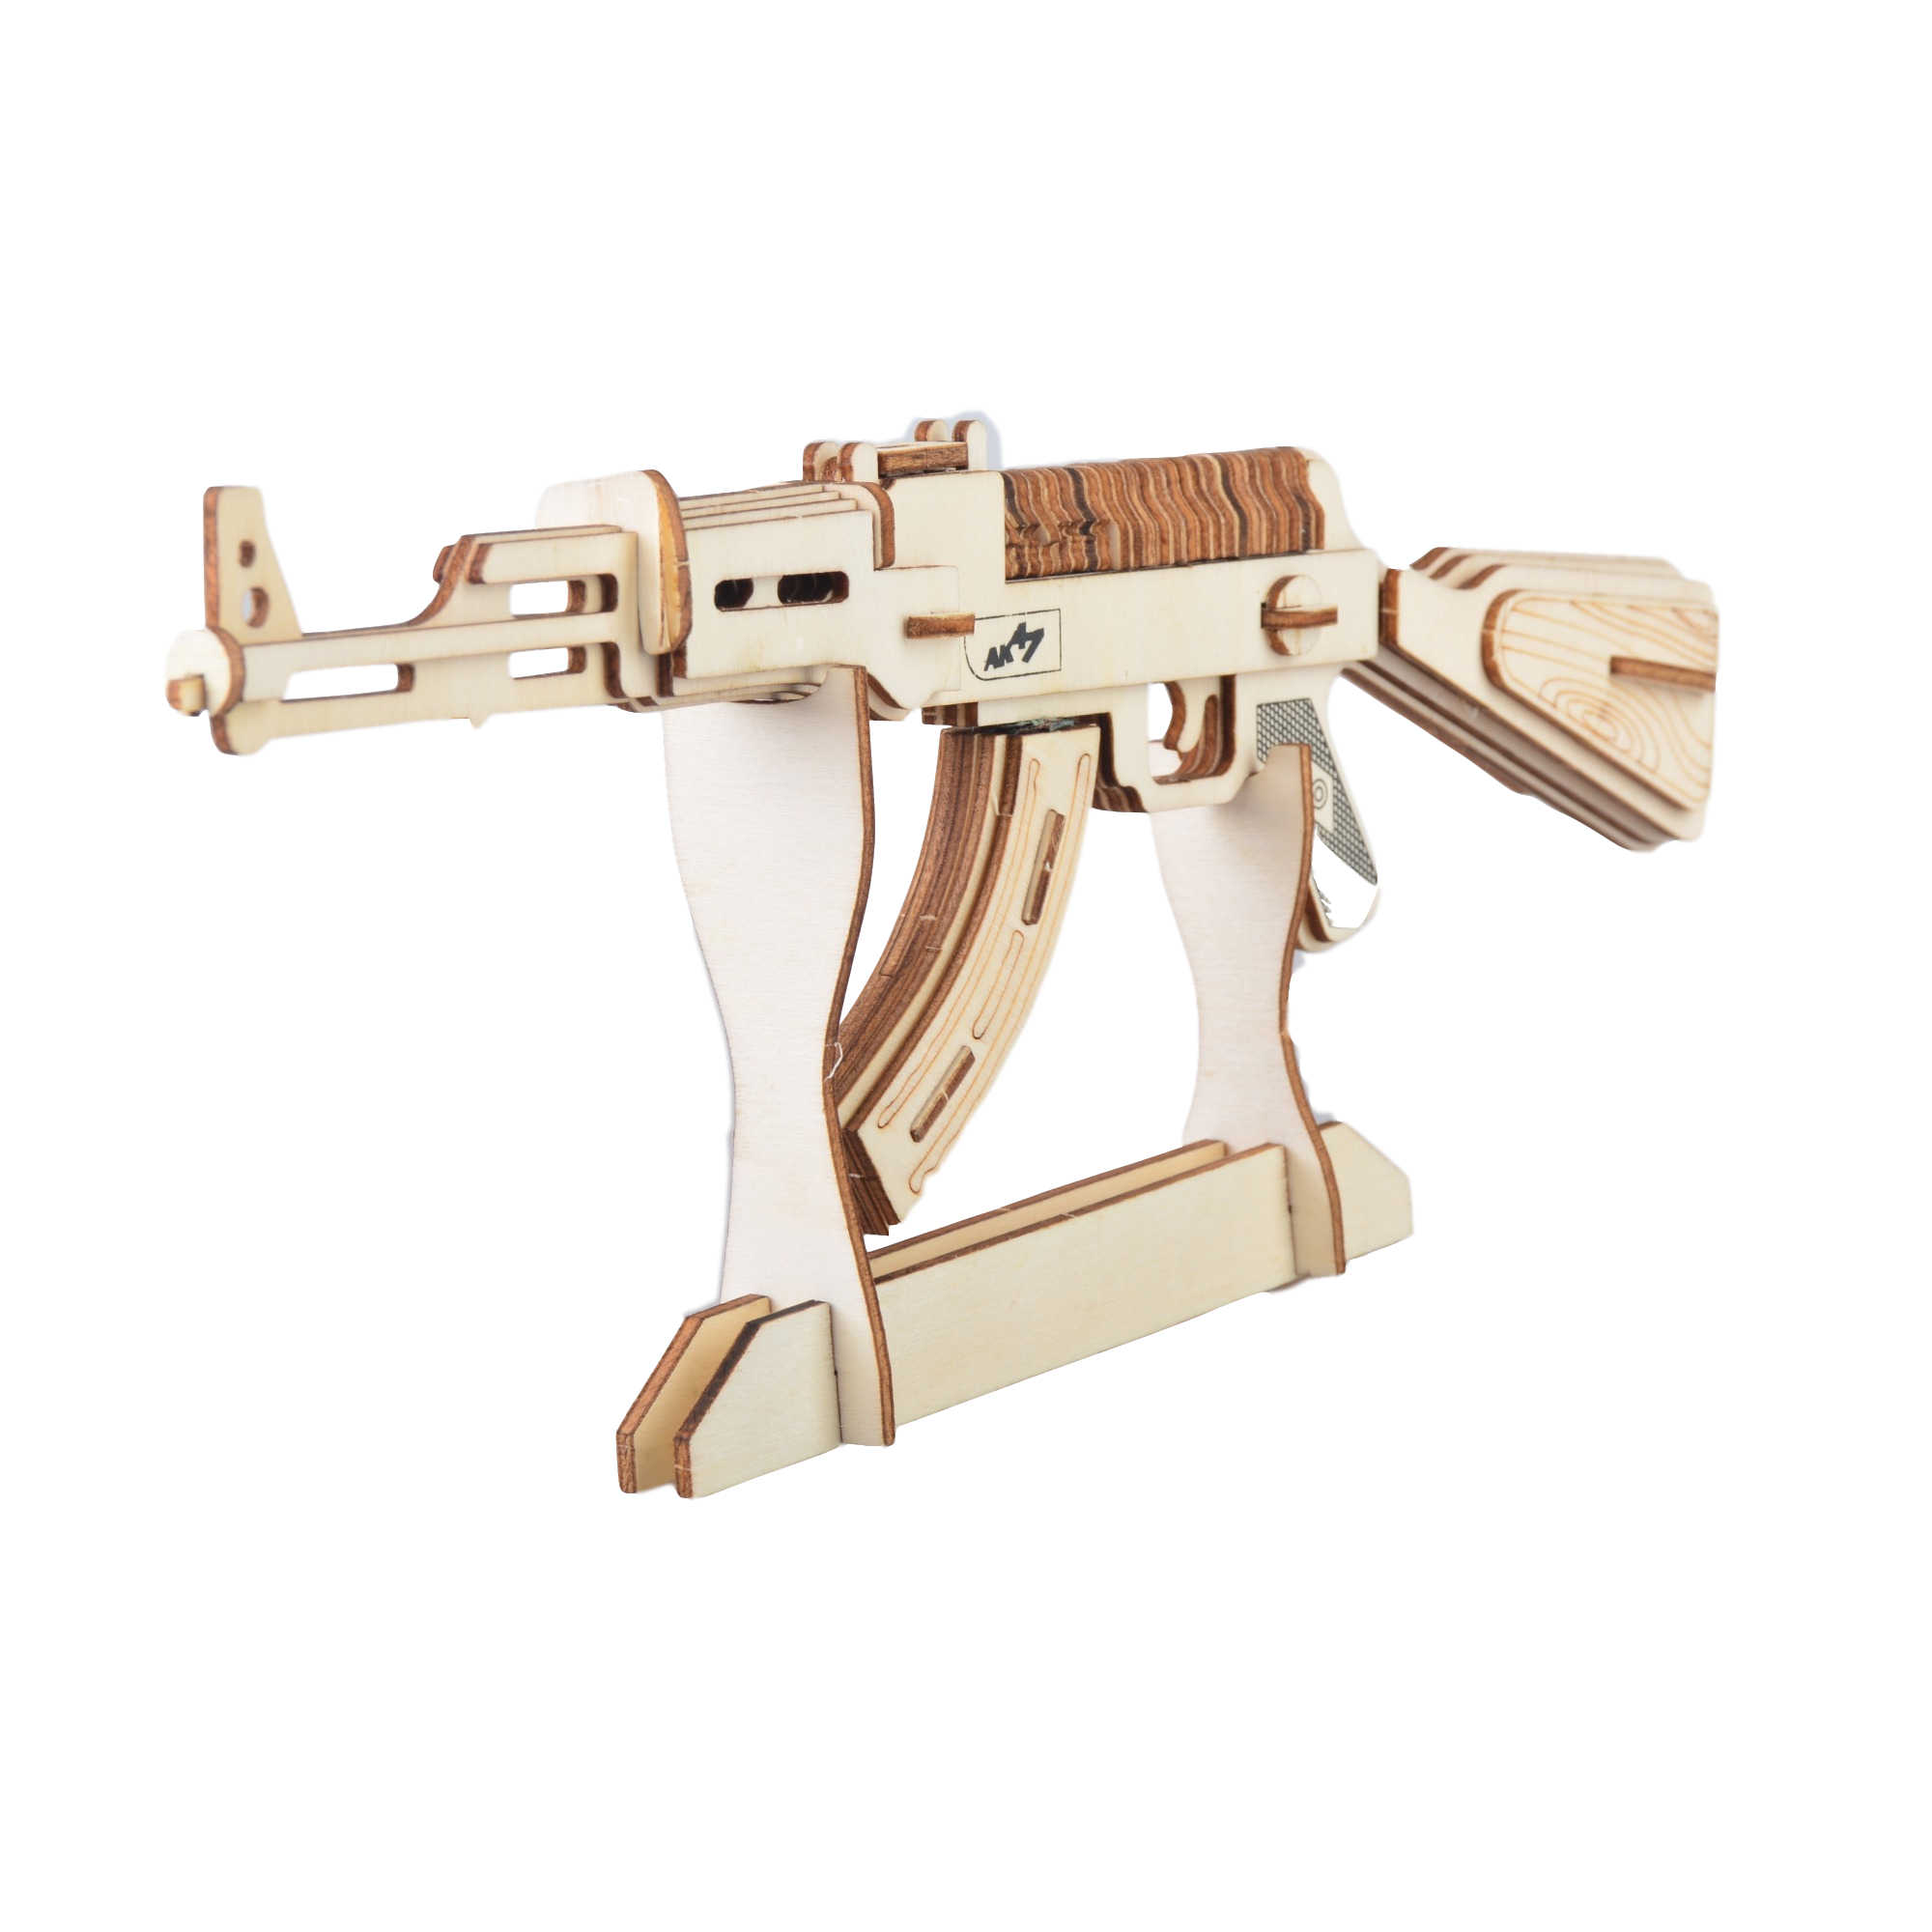 3d Puzzle Wooden Toys Laser Cutting Gun Ak47 Diy Assembly Kit Jigsaw Puzzle Kids Educational Learning Wood Toys For Children